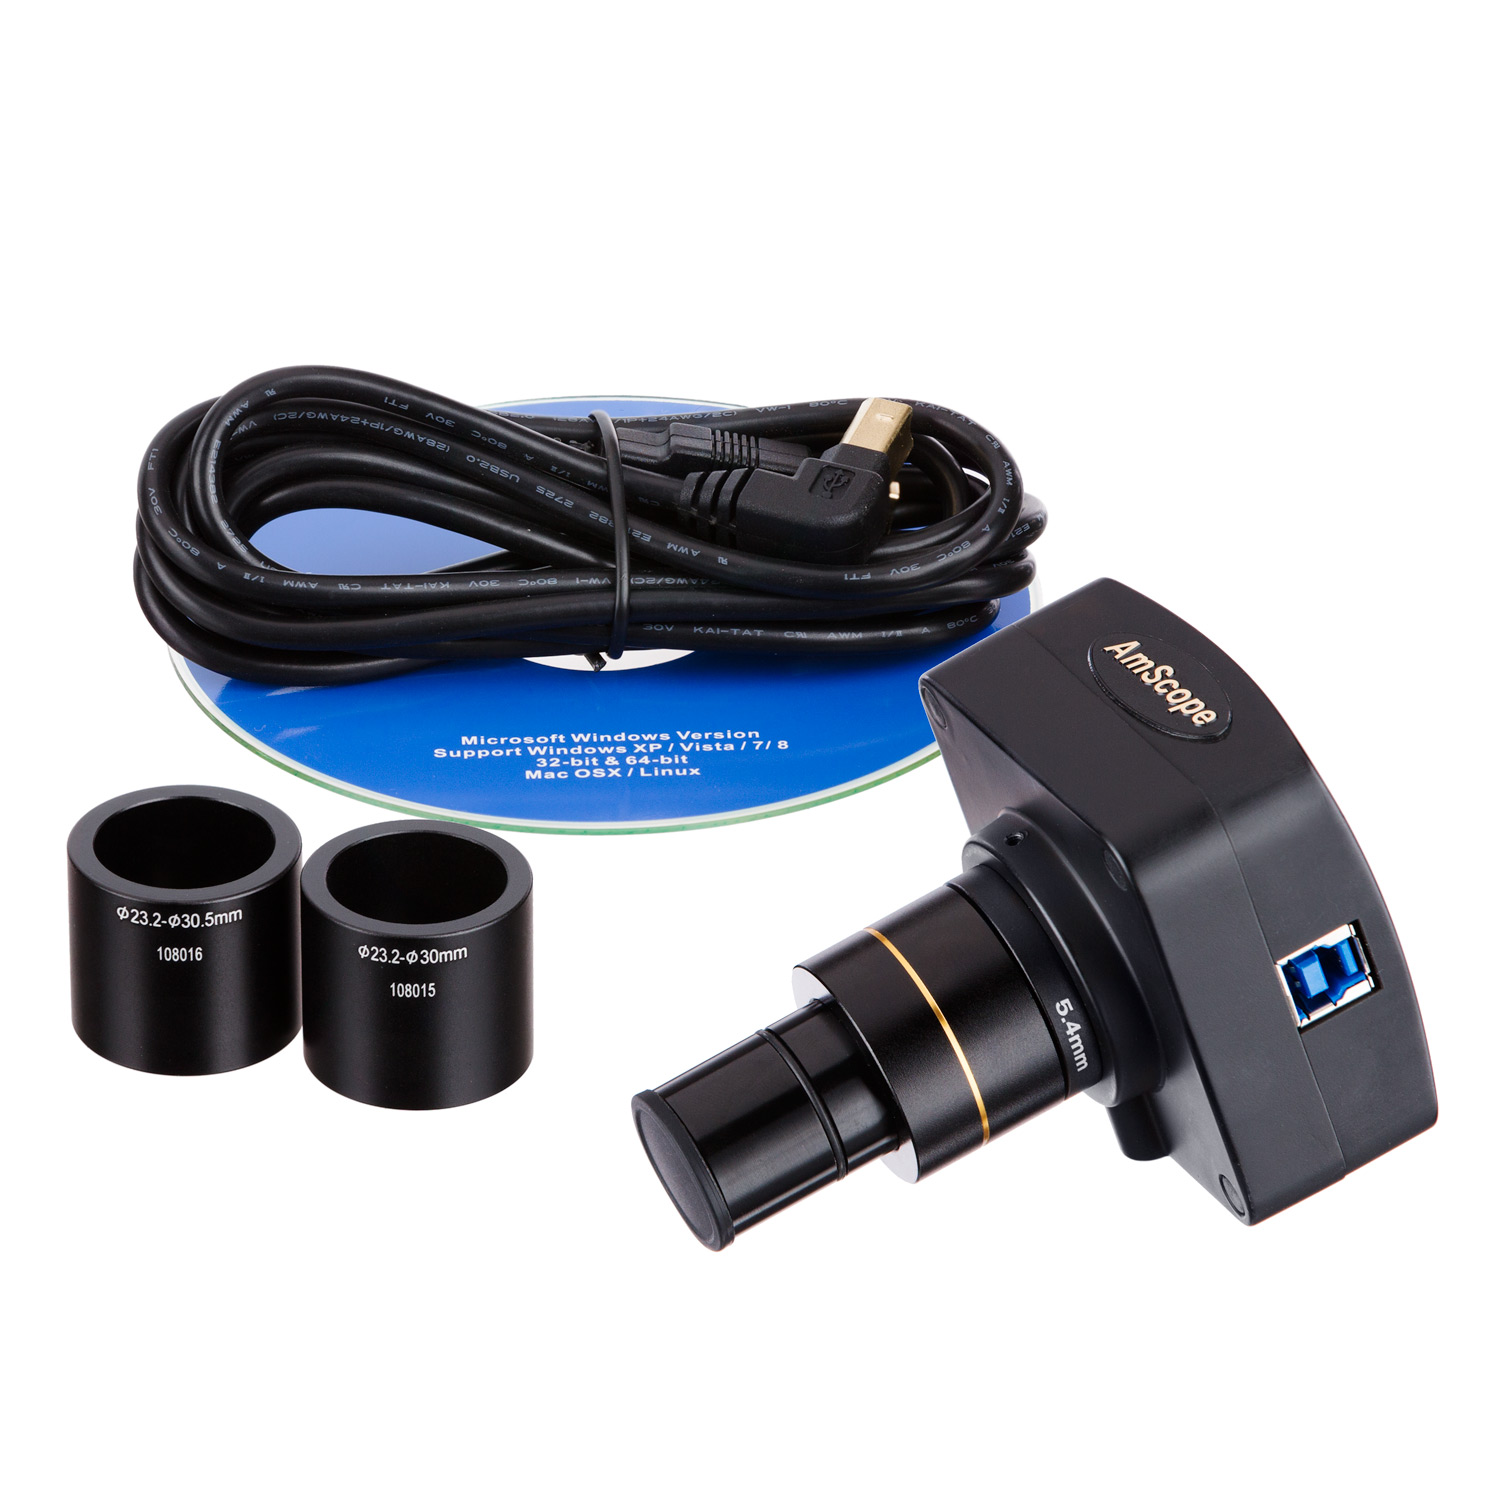 AmScope 2.8MP USB3.0 CCD Fluorescence Digital Camera